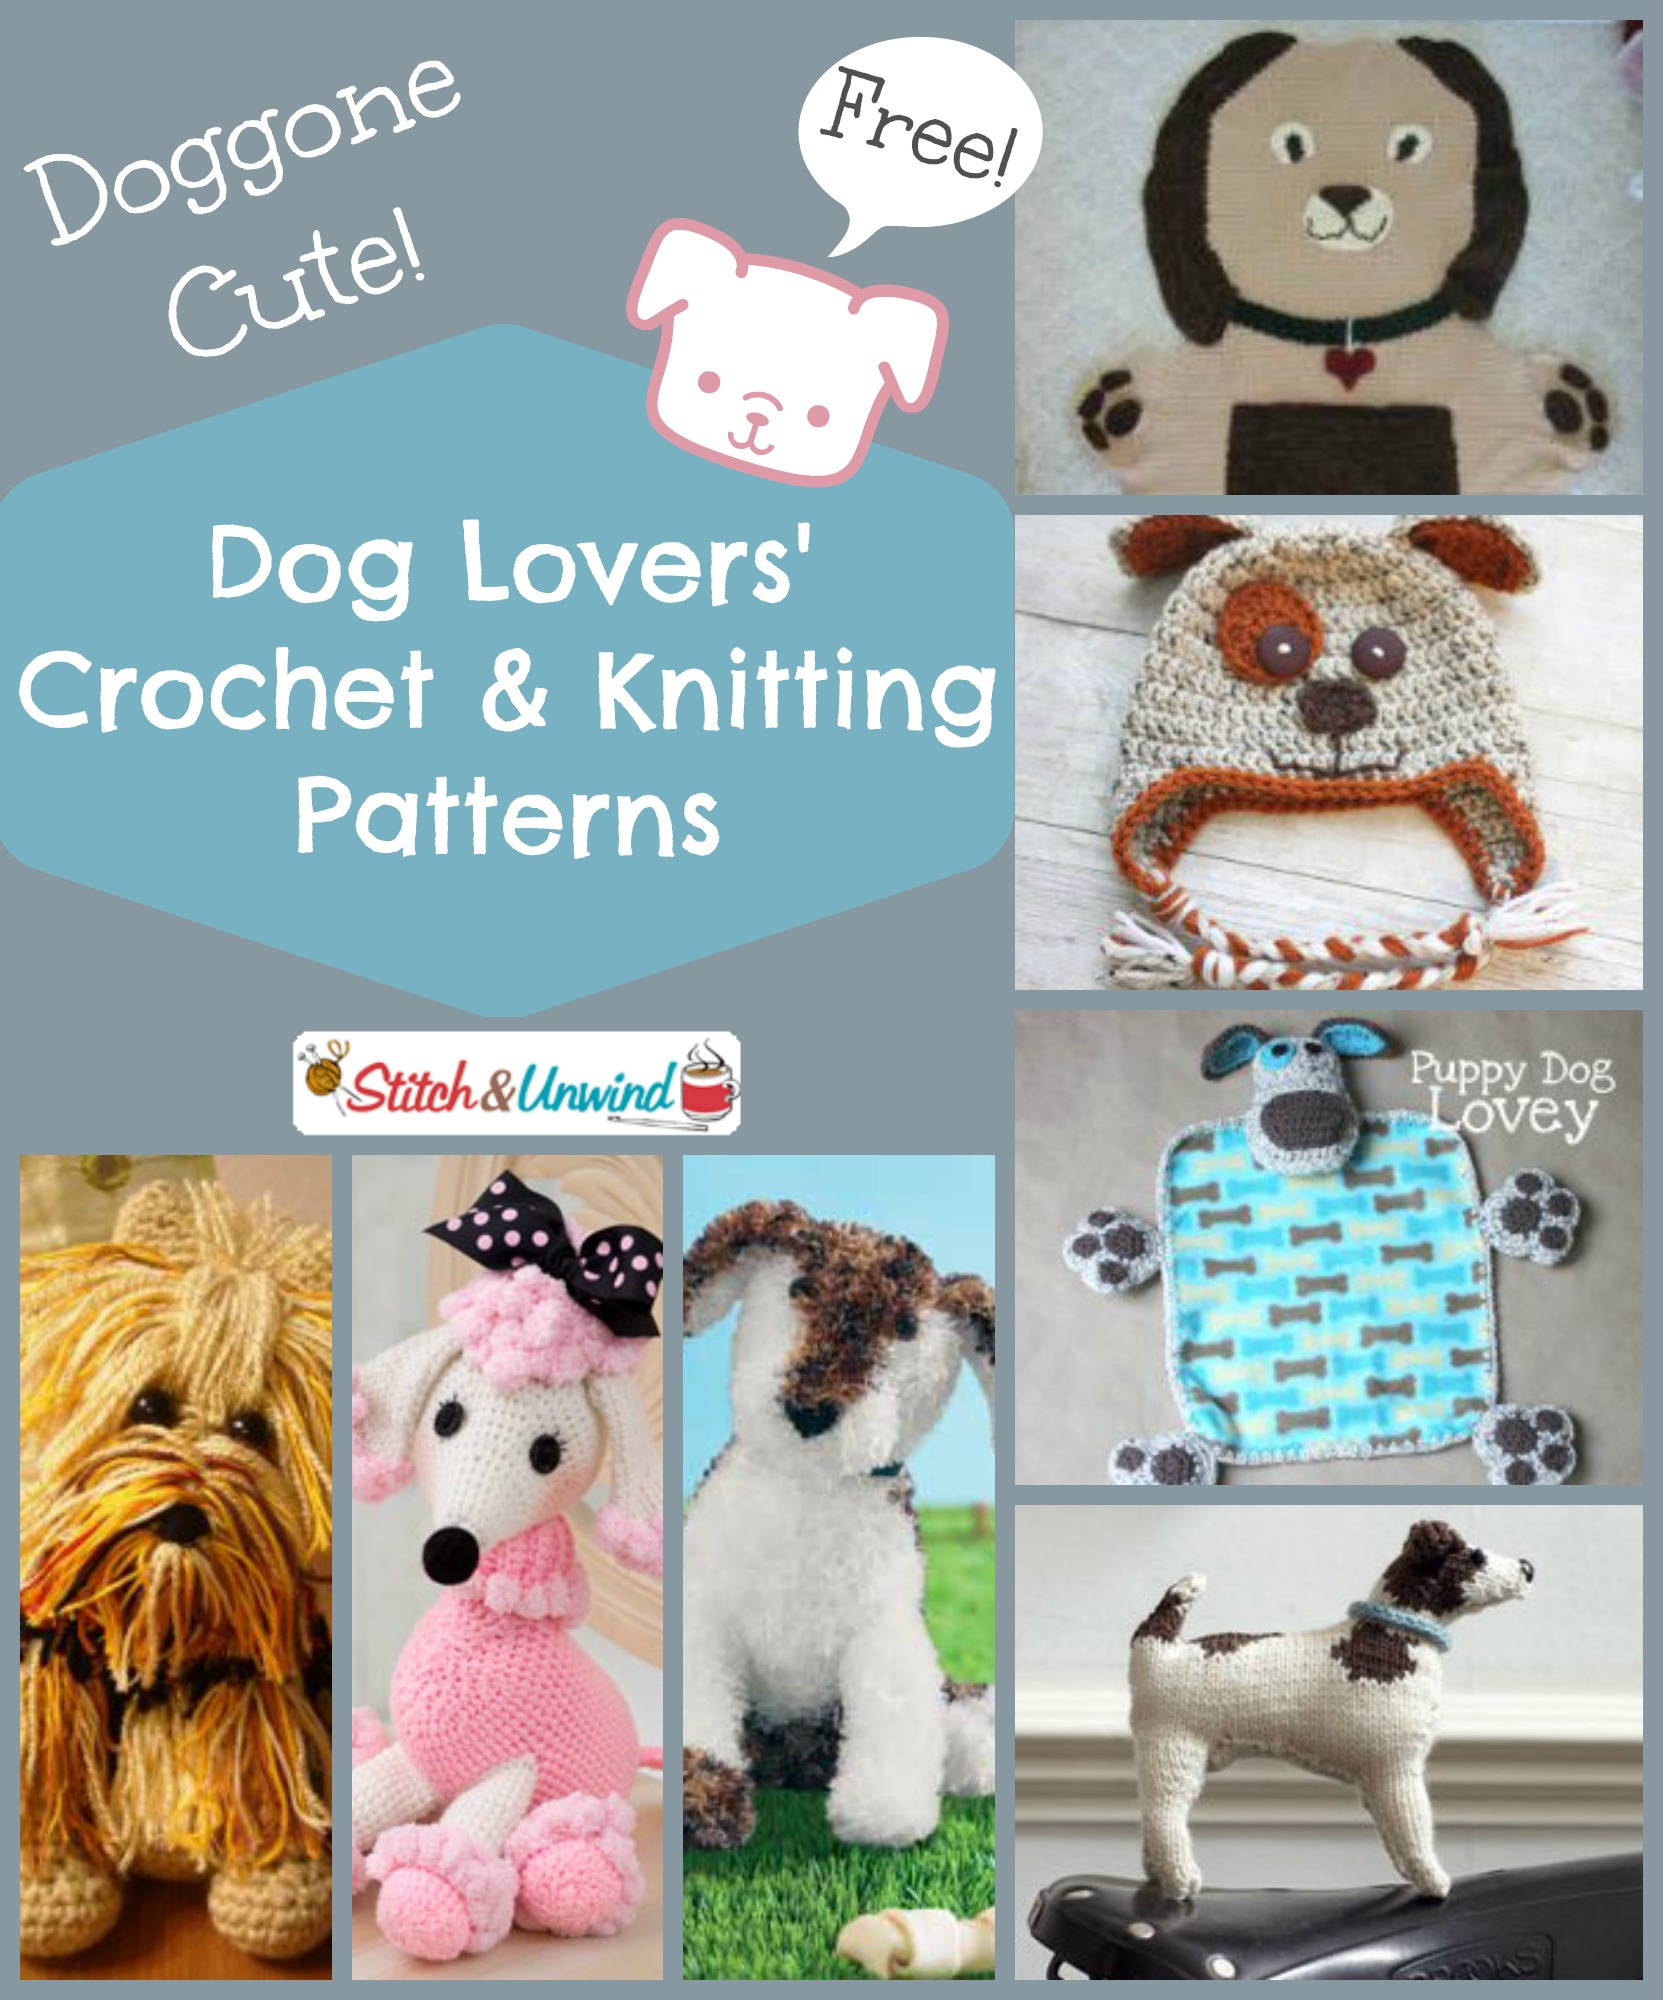 Doggone Cute Dog Lovers Crochet And Knitting Pattern Round Up